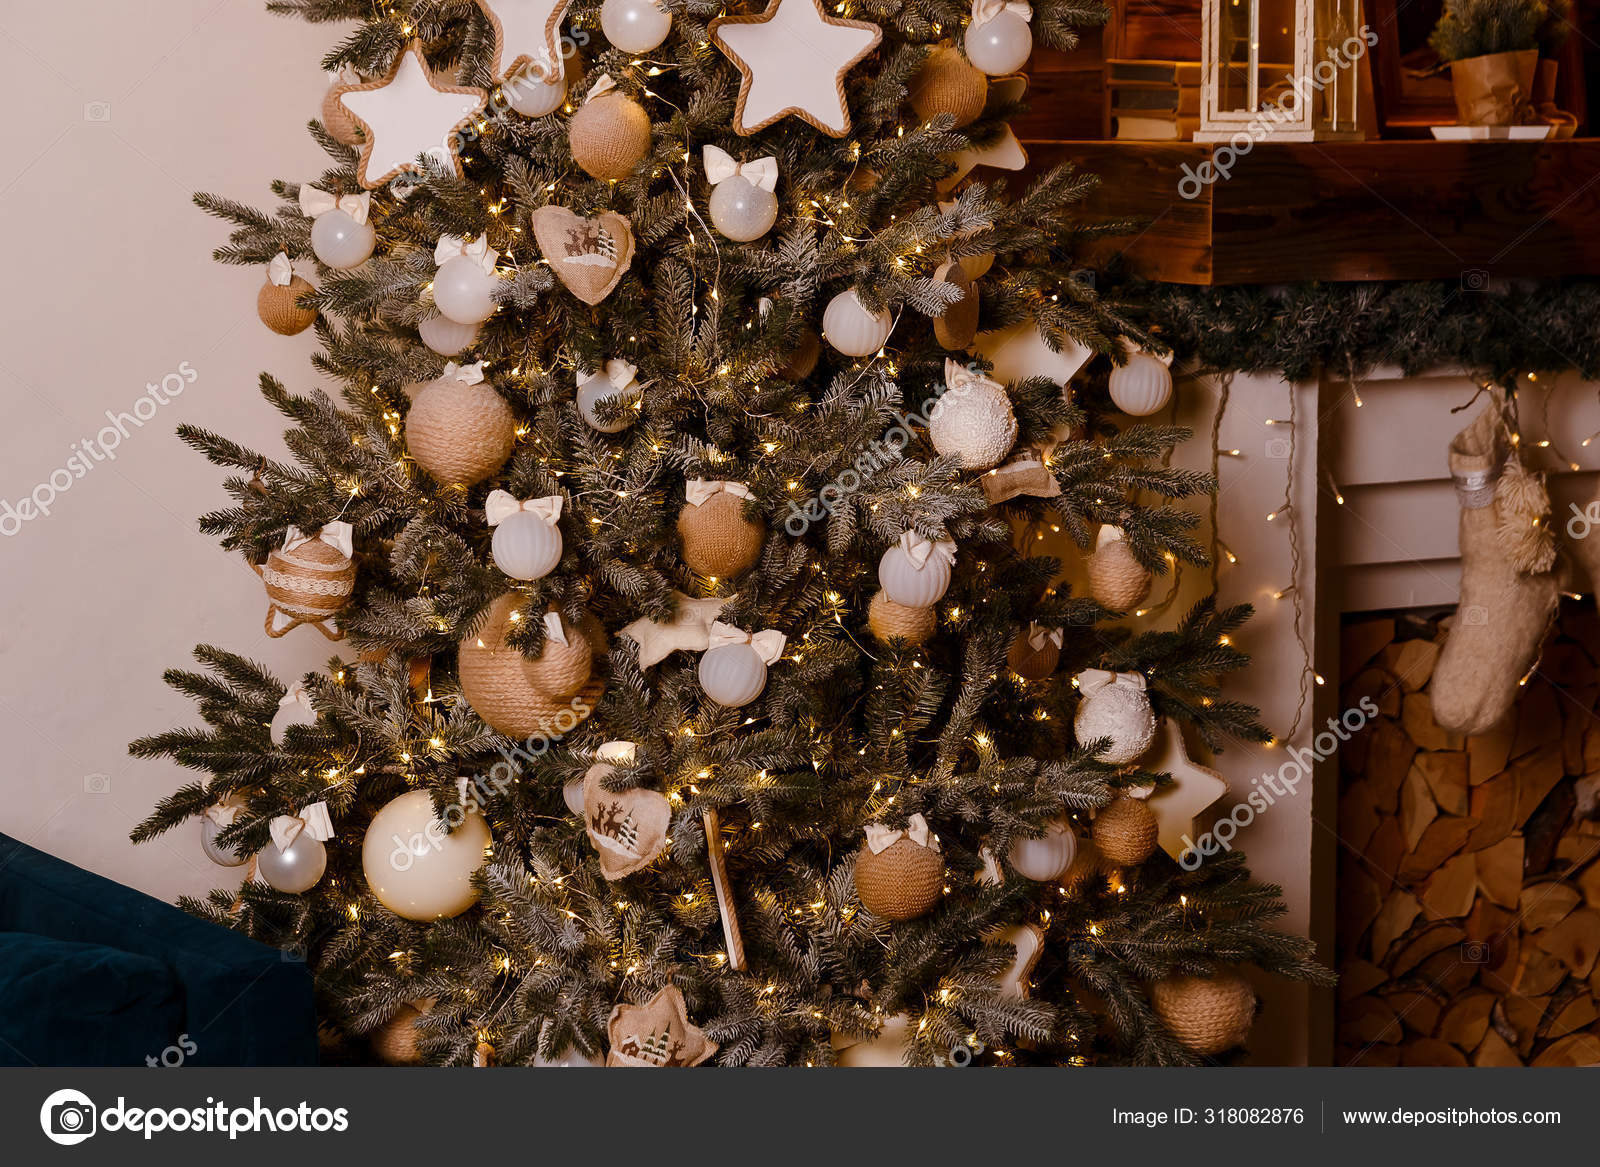 Beautiful Elegant Christmas Tree Decorated With White And Gold Balls With Bows Stock Photo C Ex3malka 318082876